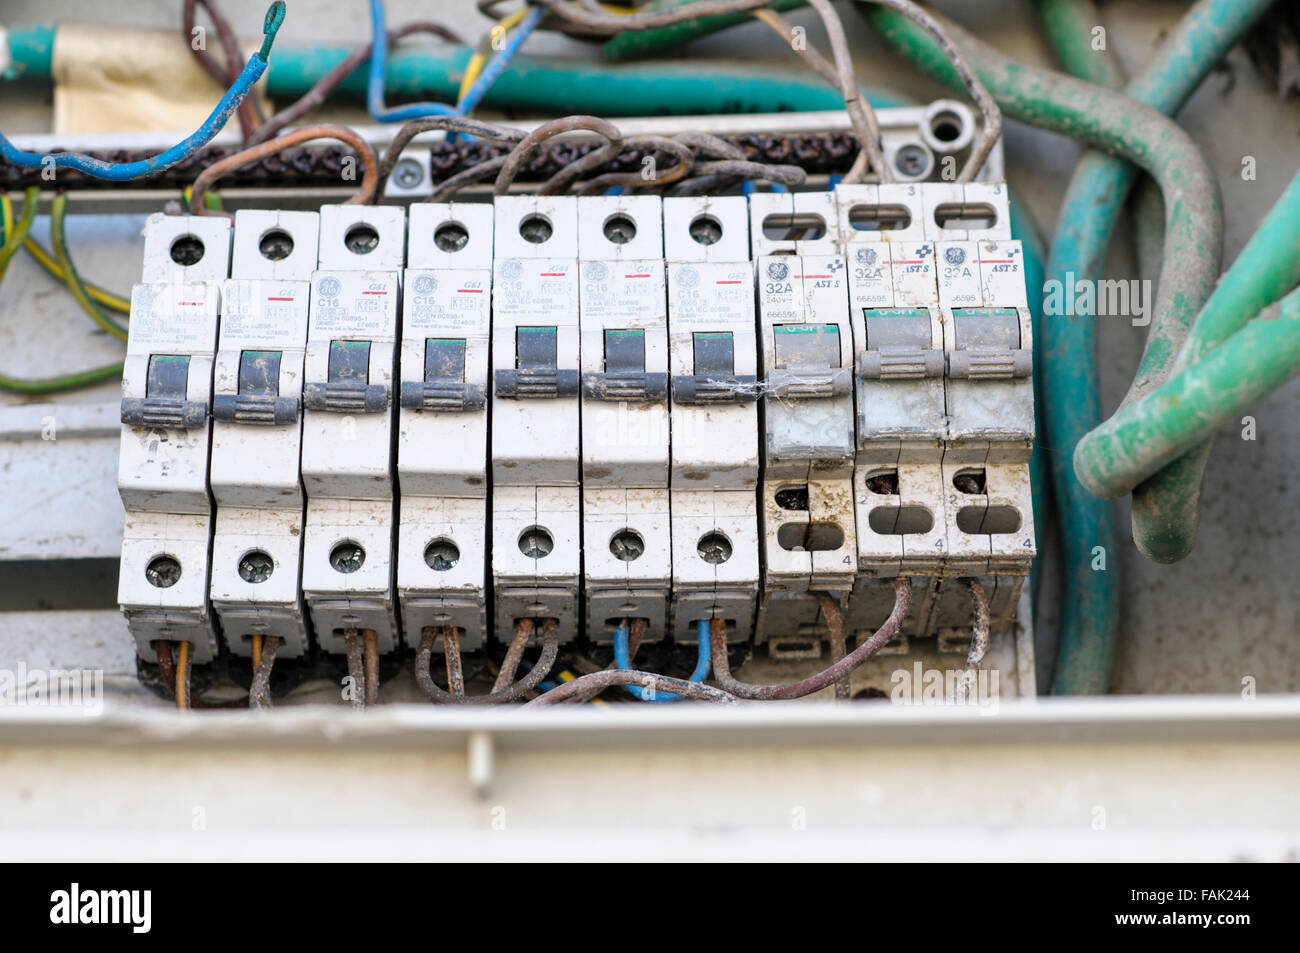 Ac Fuse Box Melted : Fuse box melted electrical fire panel